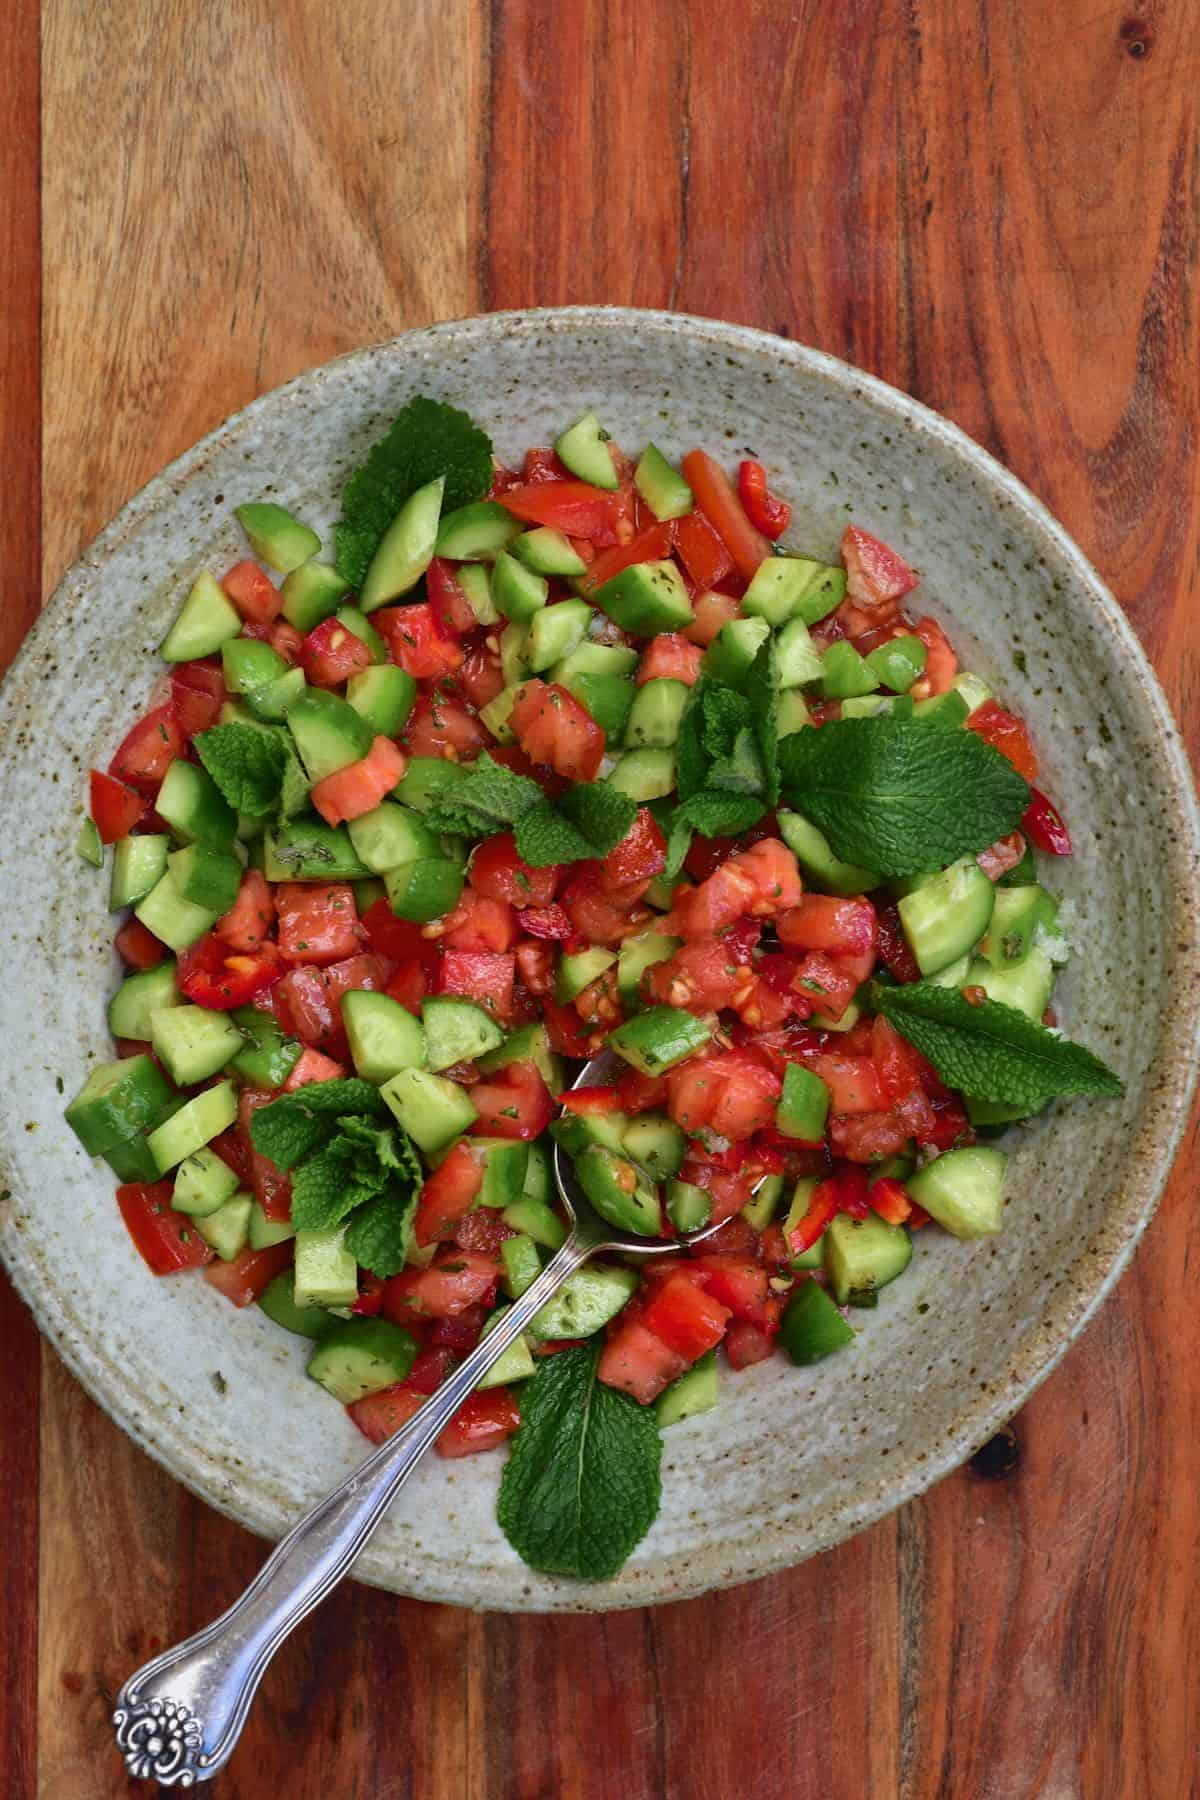 Tomato and cucumber salad topped with fresh mint